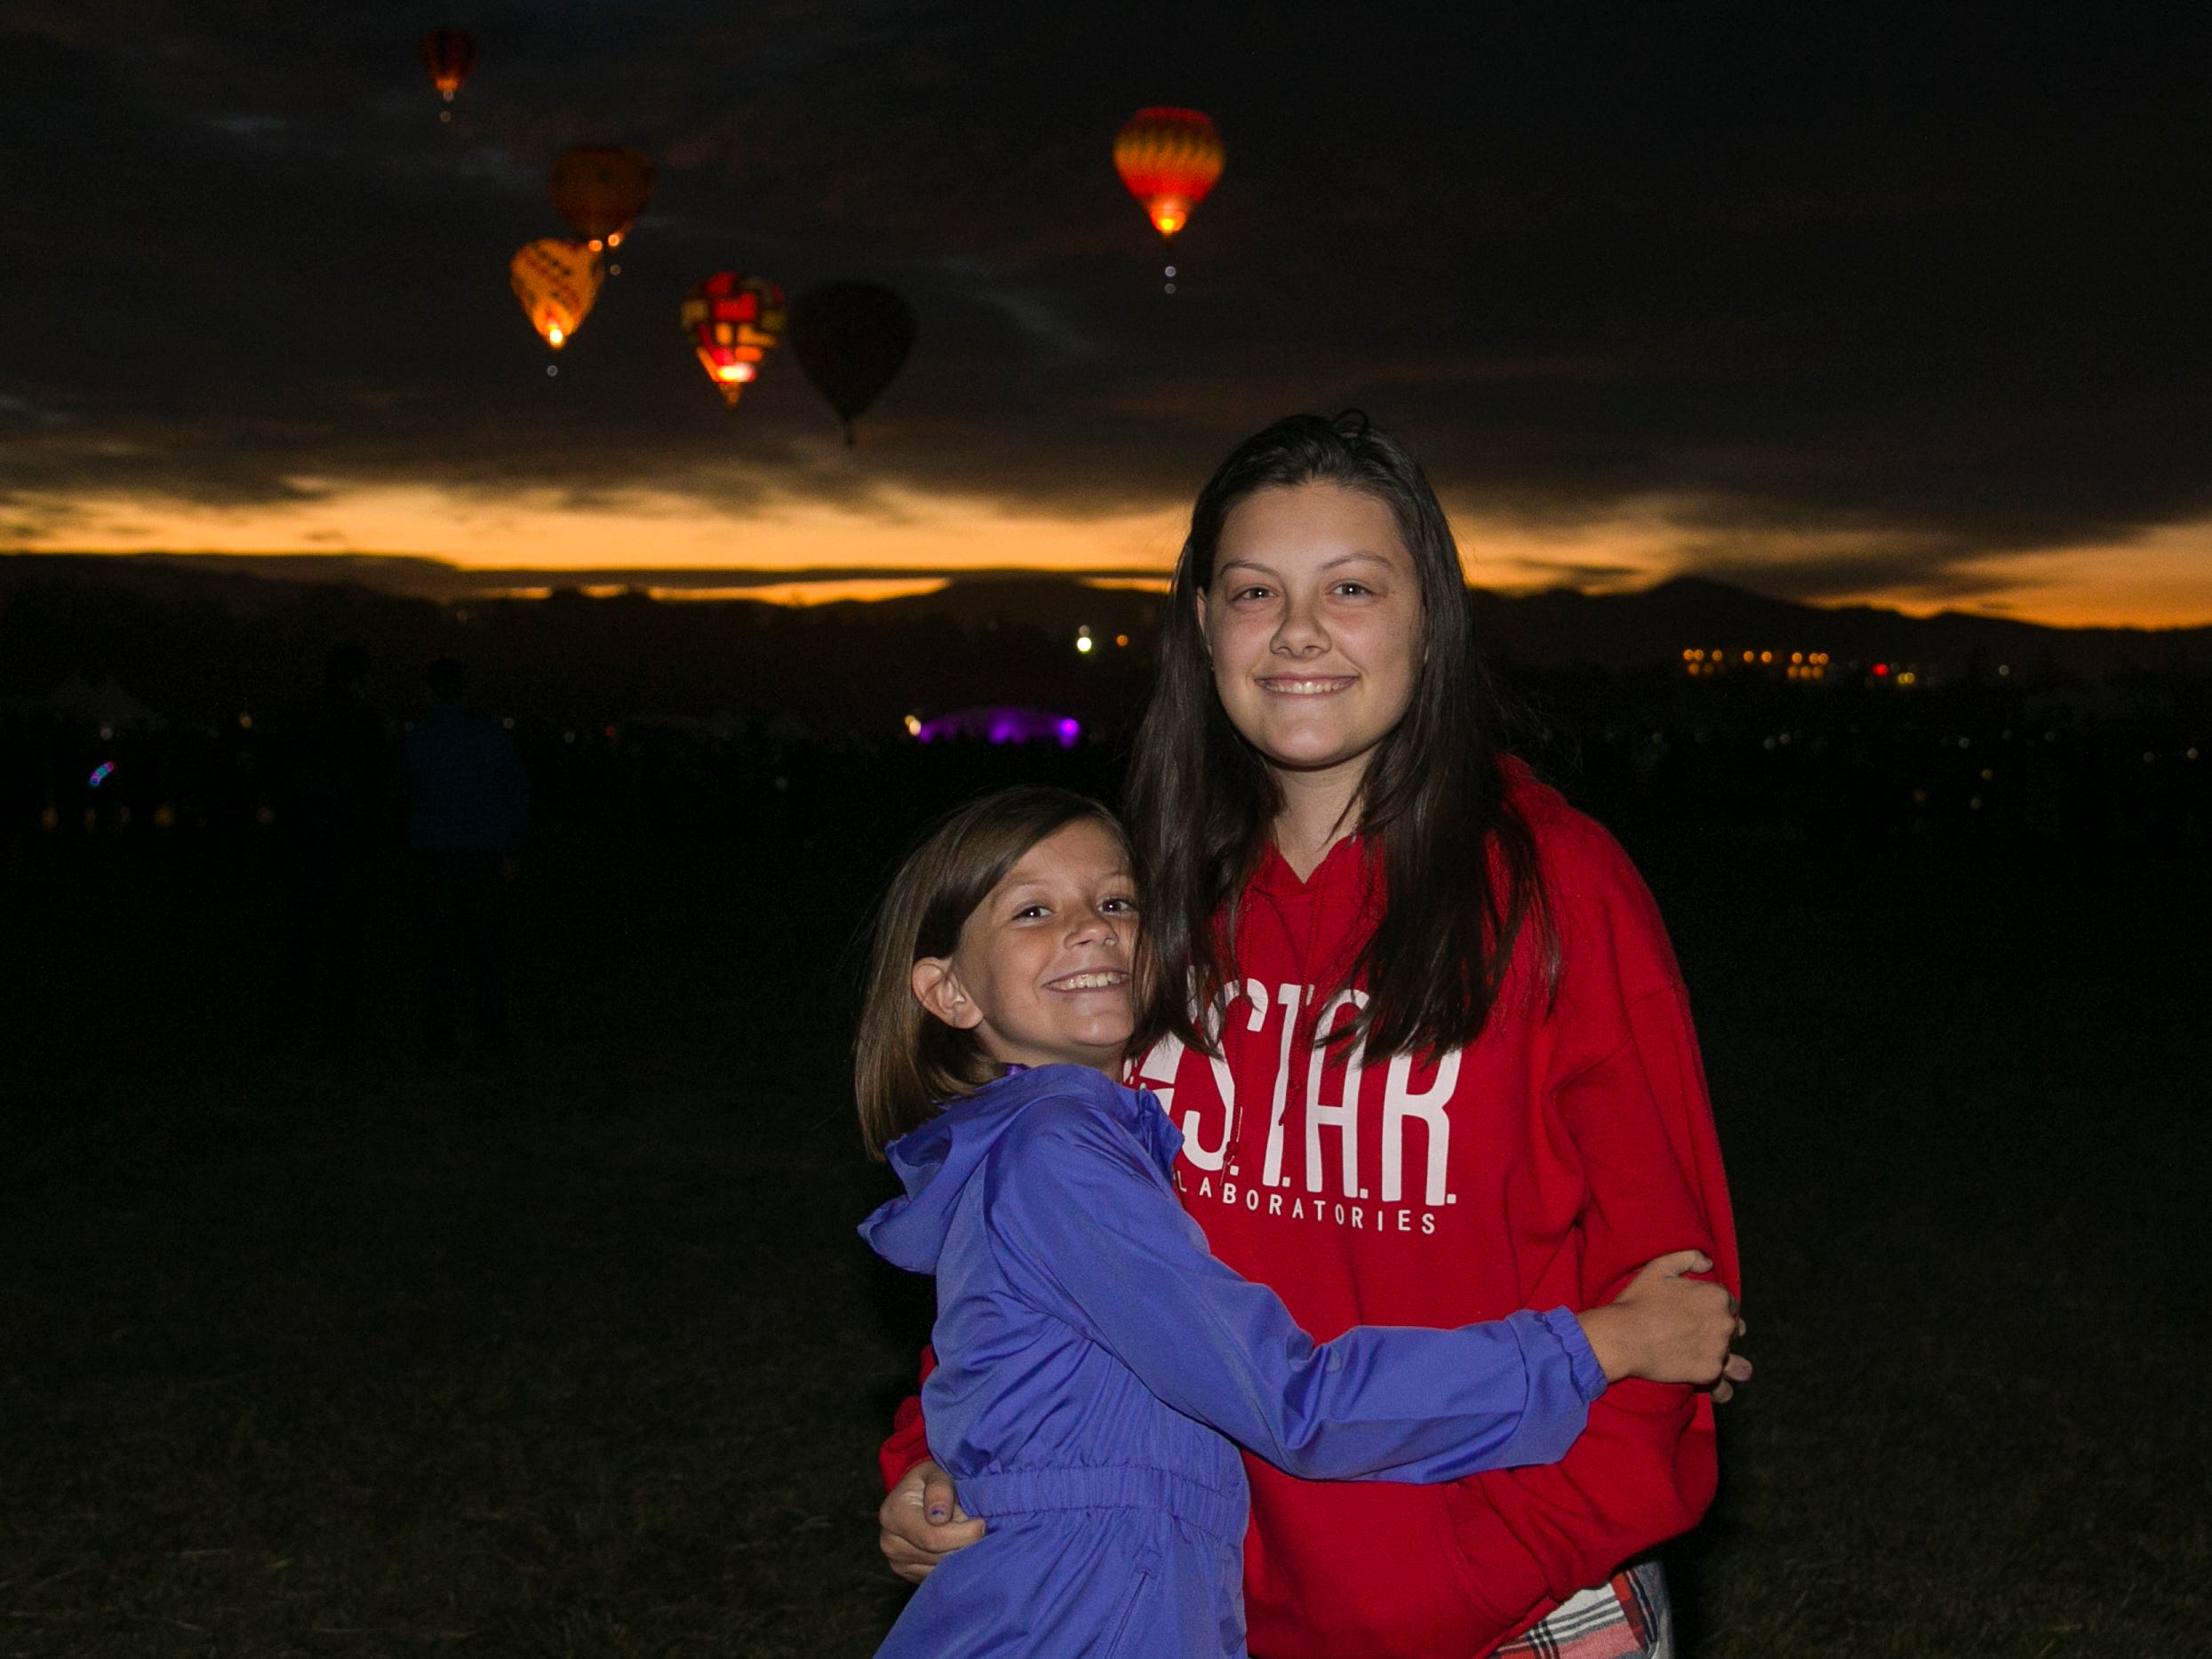 Jillian and Avie during dawn patrol at the Great Reno Balloon Races held on Saturday, Sept. 8, 2018.